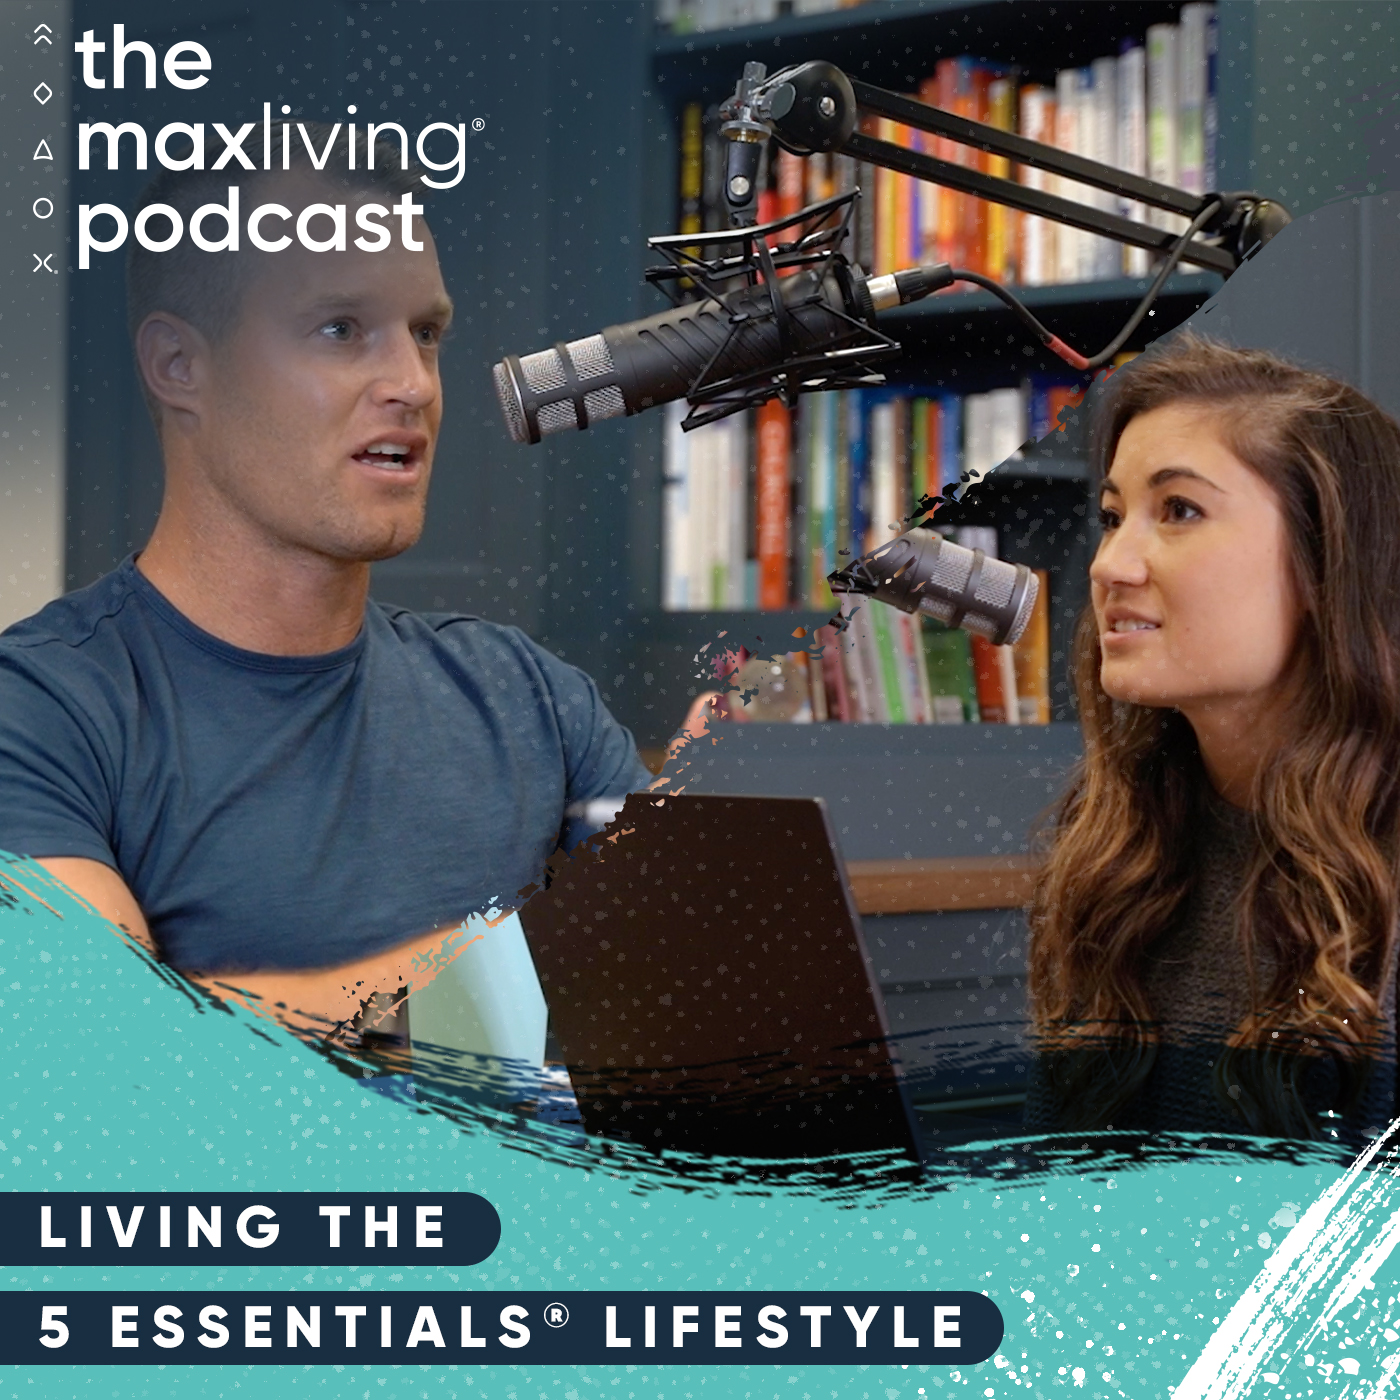 Living the 5 Essentials® Lifestyle